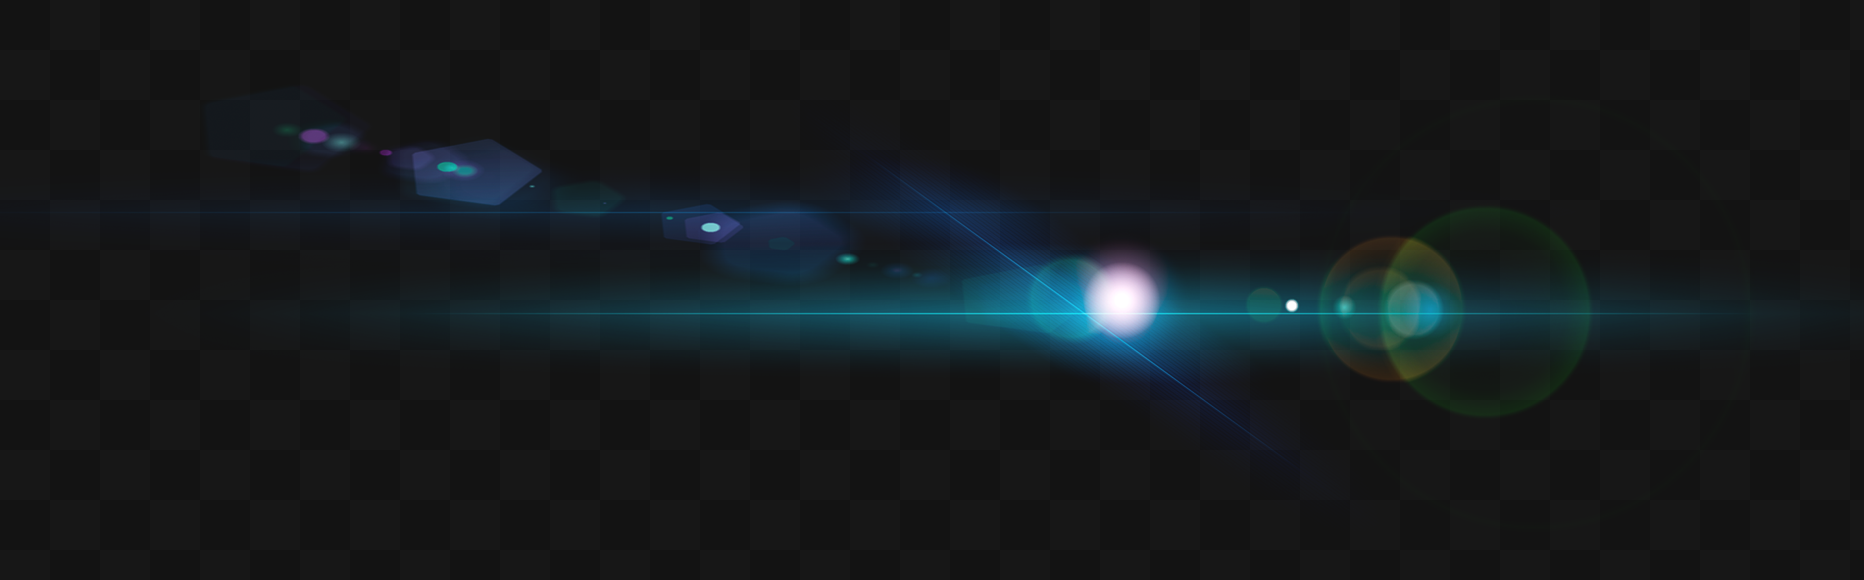 Blue Lens Flare PNG Image Free Download searchpng.com.